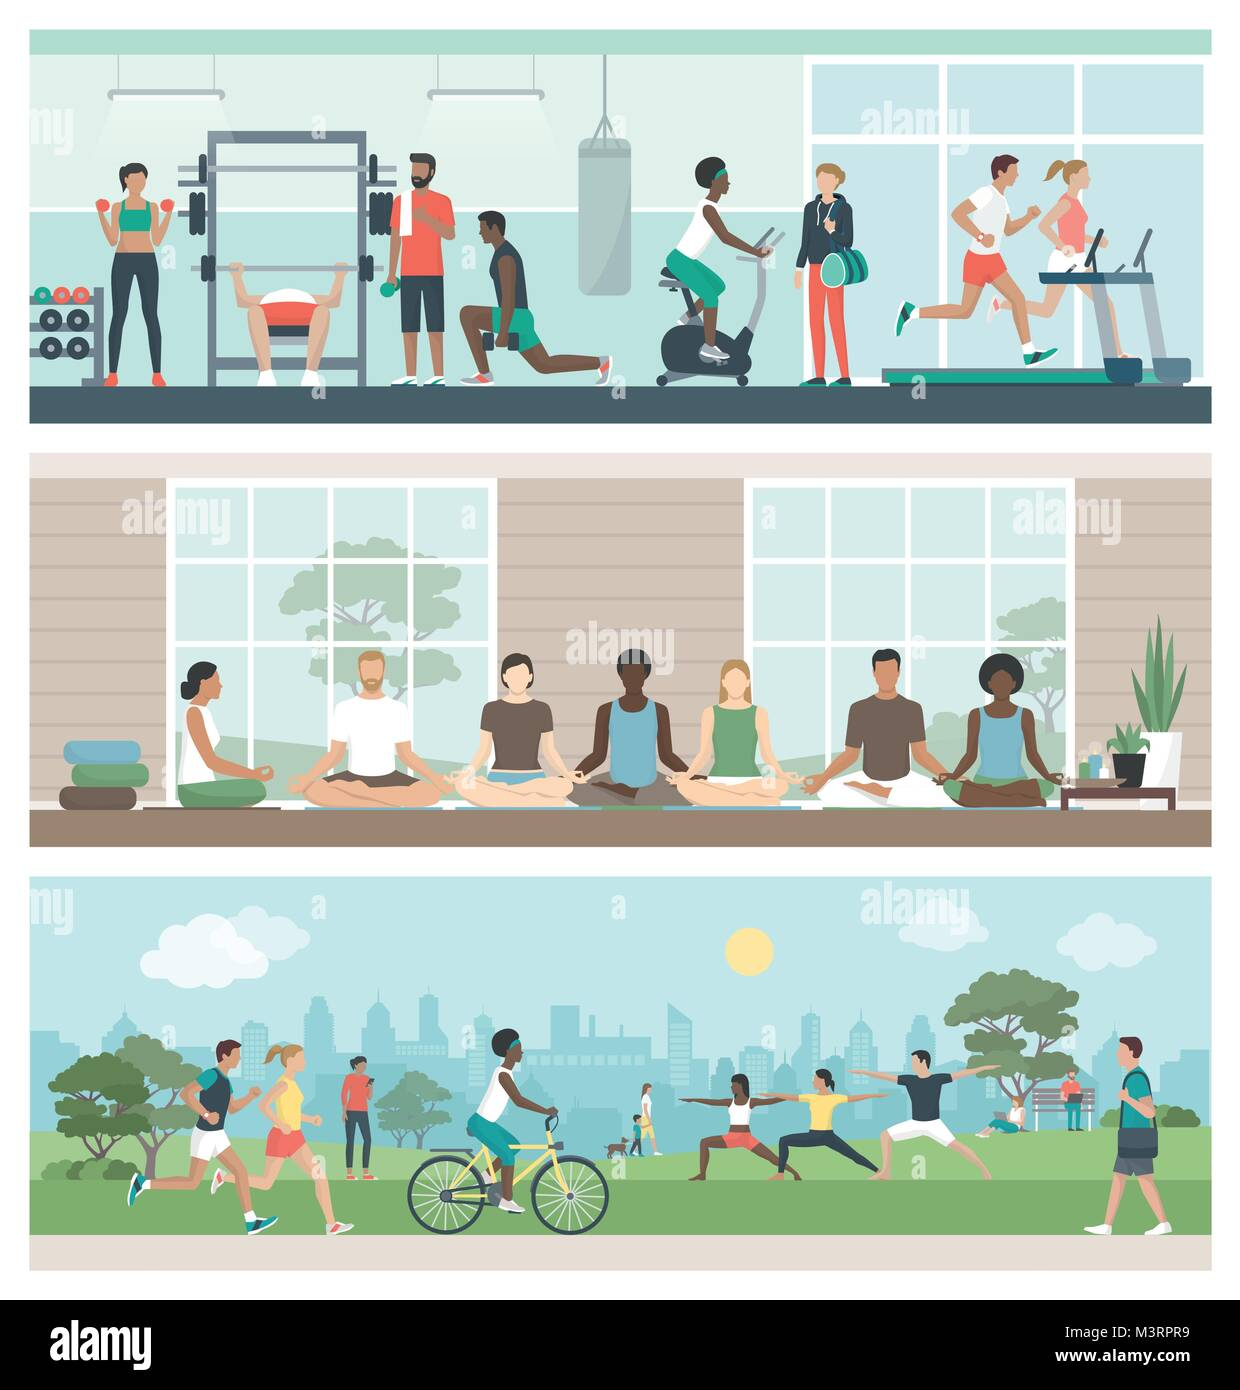 Multiethnic groups of people practicing sports and meditation: they are exercising at the gym, doing yoga and relaxing - Stock Vector